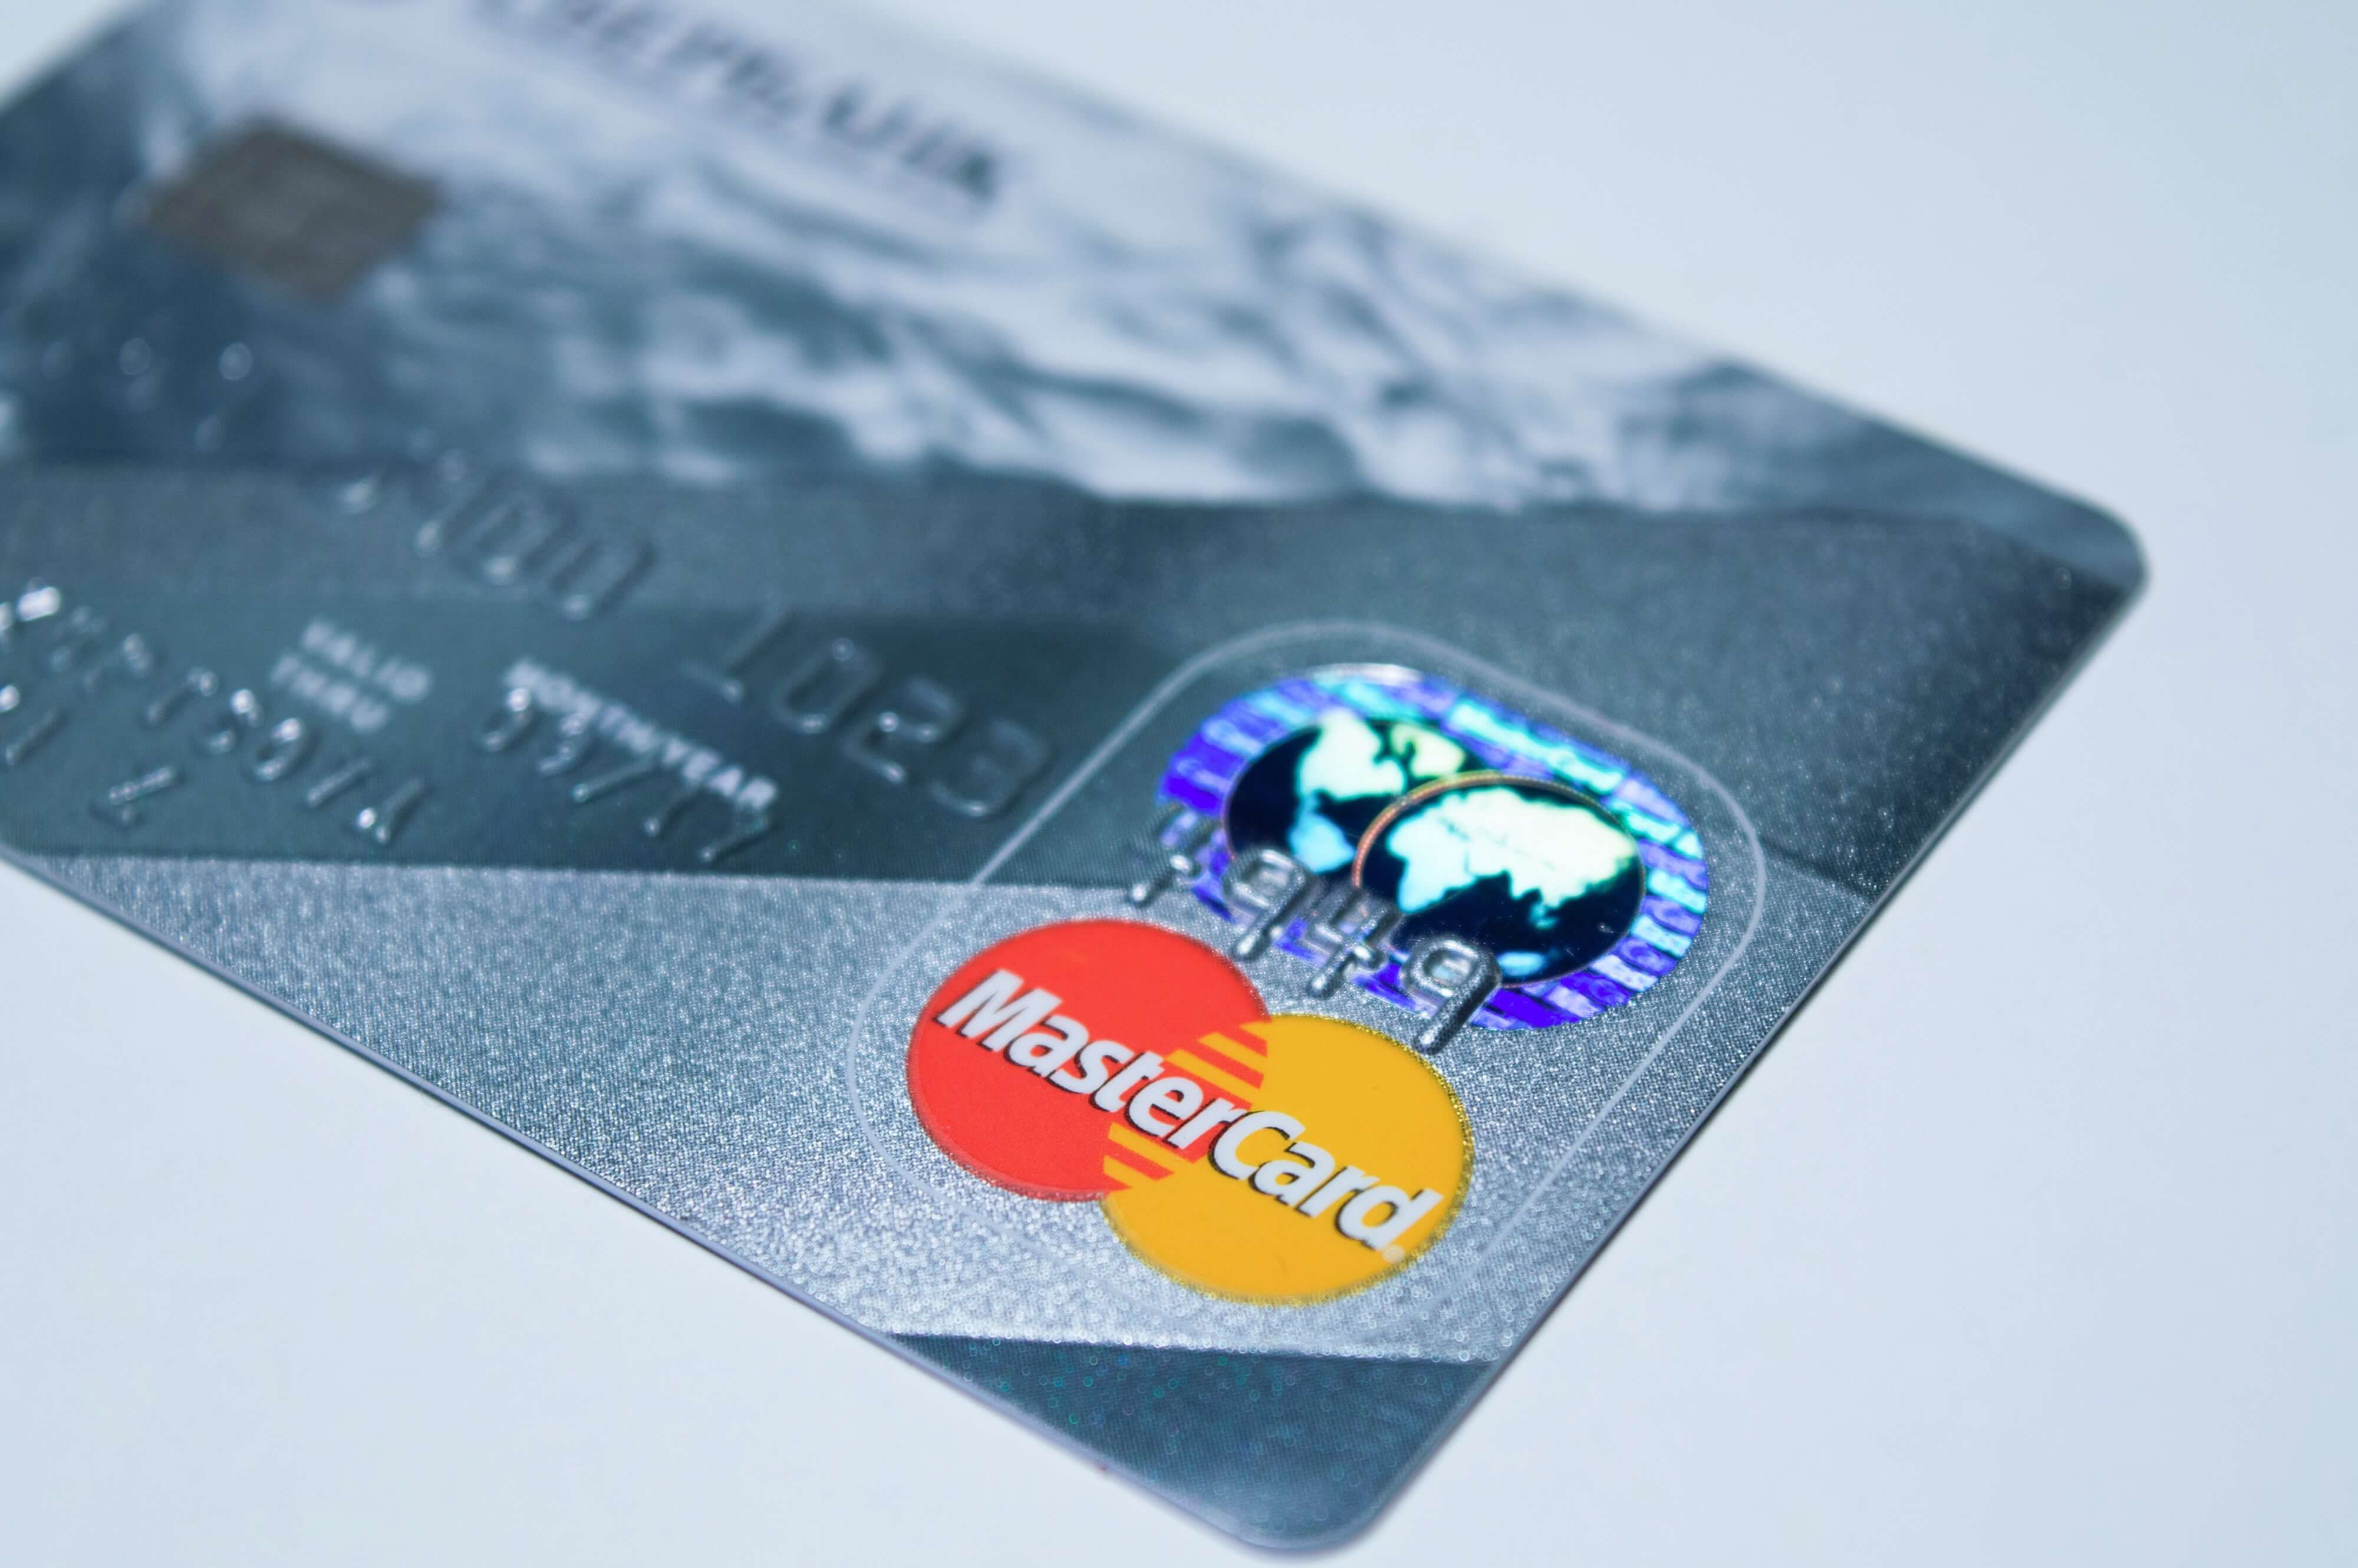 Mastercard just hired a CXO – here's why that matters